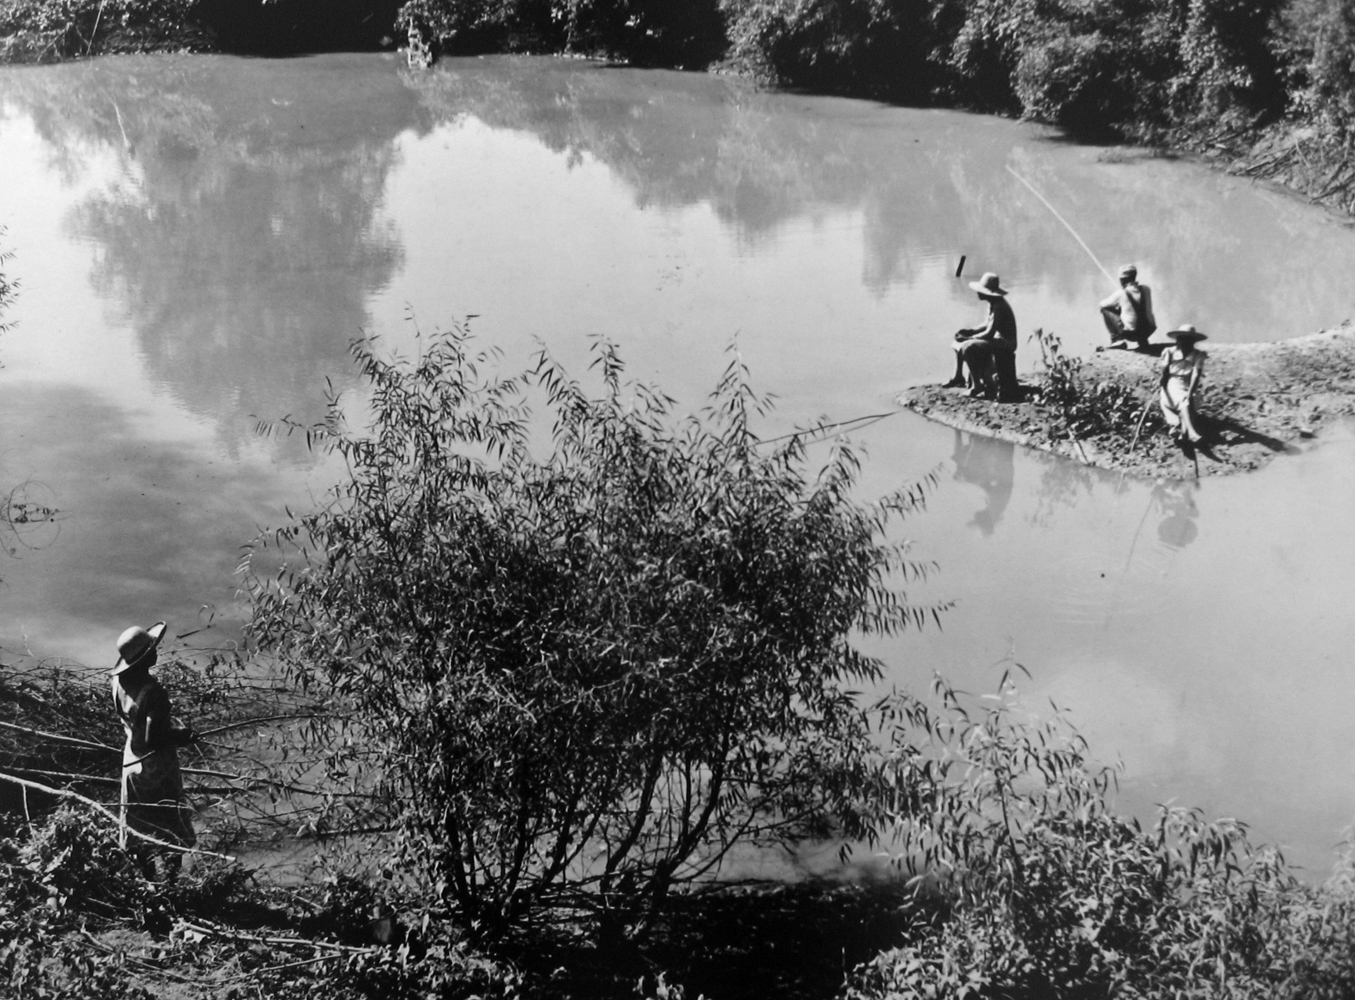 Marion Post Wolcott, Fishing in creek near cotton plantations outside Belzoni. Mississippi Delta, Mississippi, 1939, gelatin silver print, signed, 11 x 14 inches, $2500.